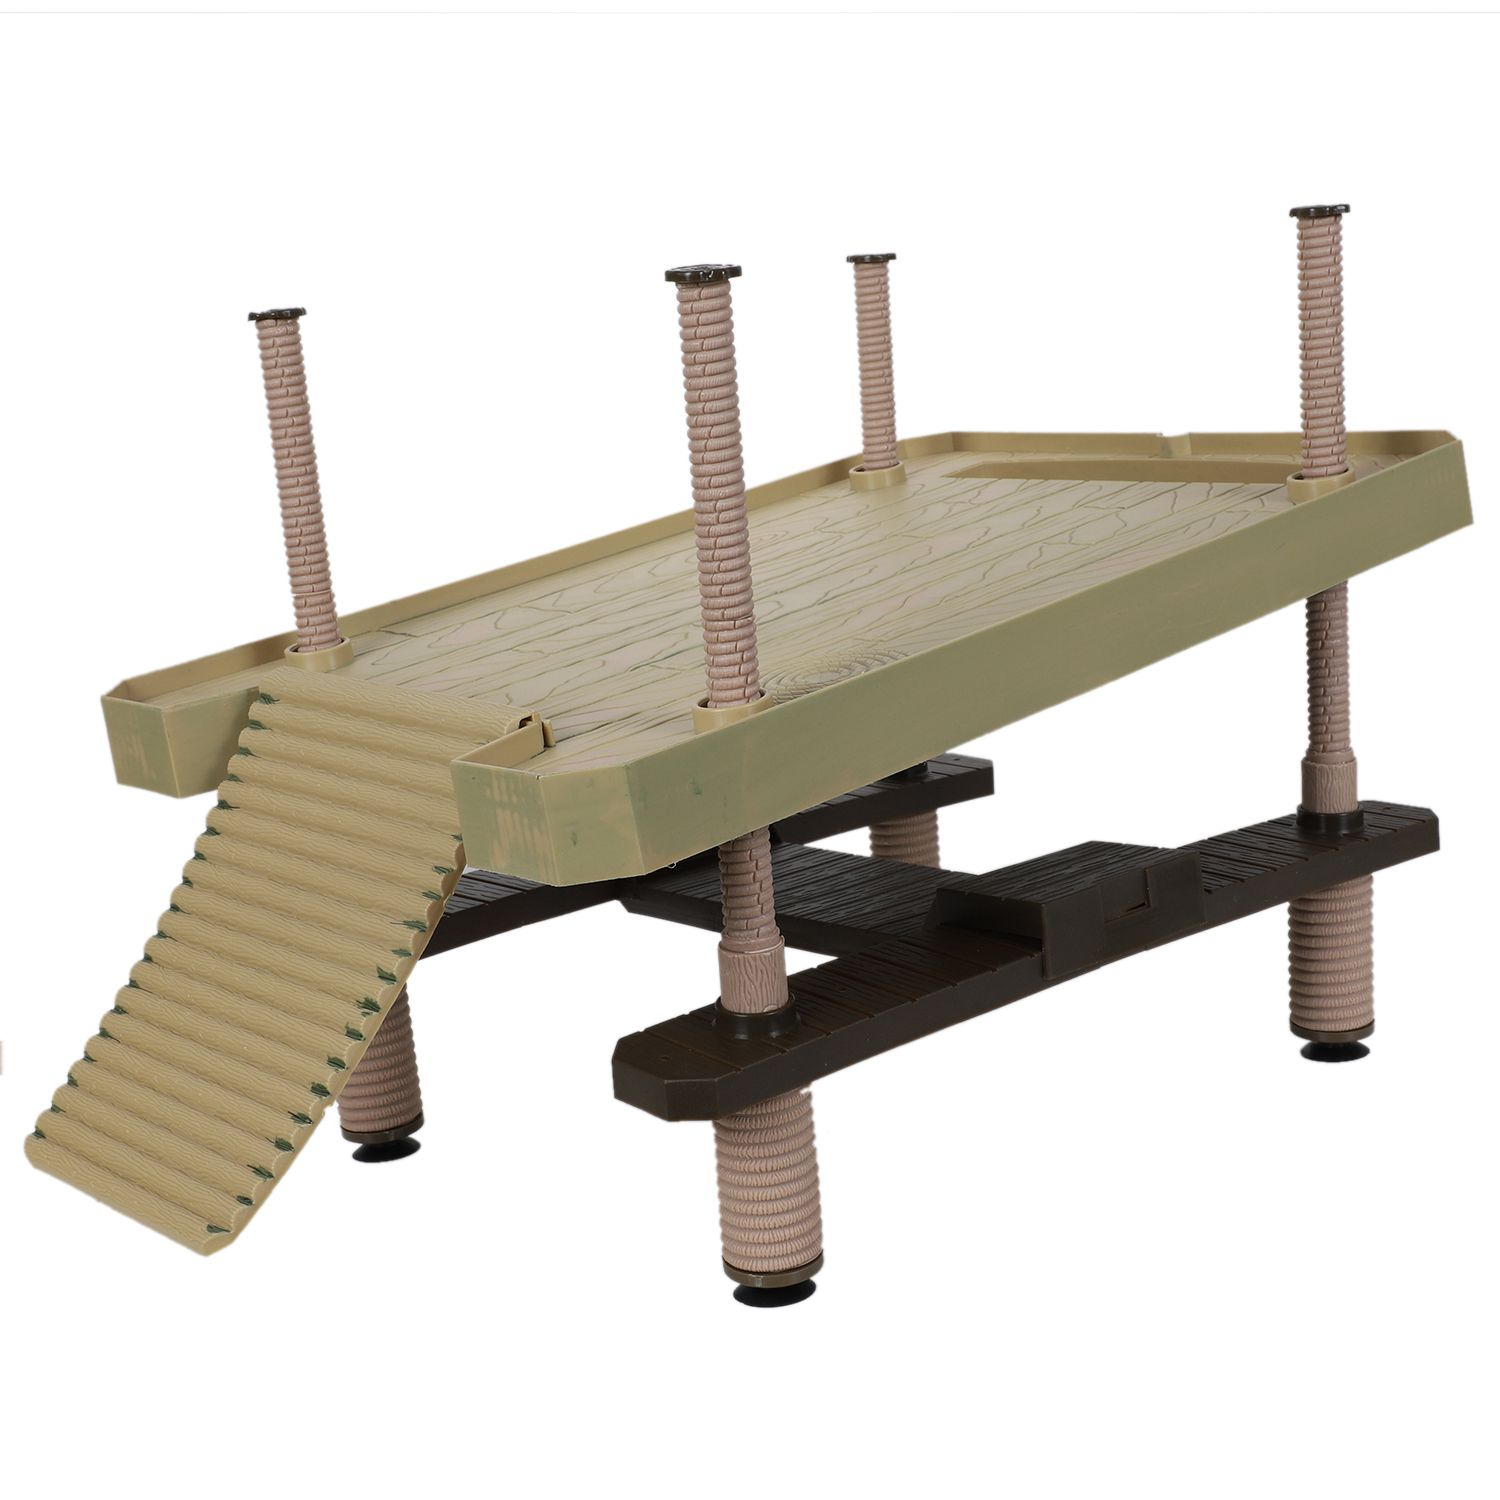 Reptile Large Turtle Square Pier Platform With Ramp Ladder Basking Floating Plastic Durable High Quality